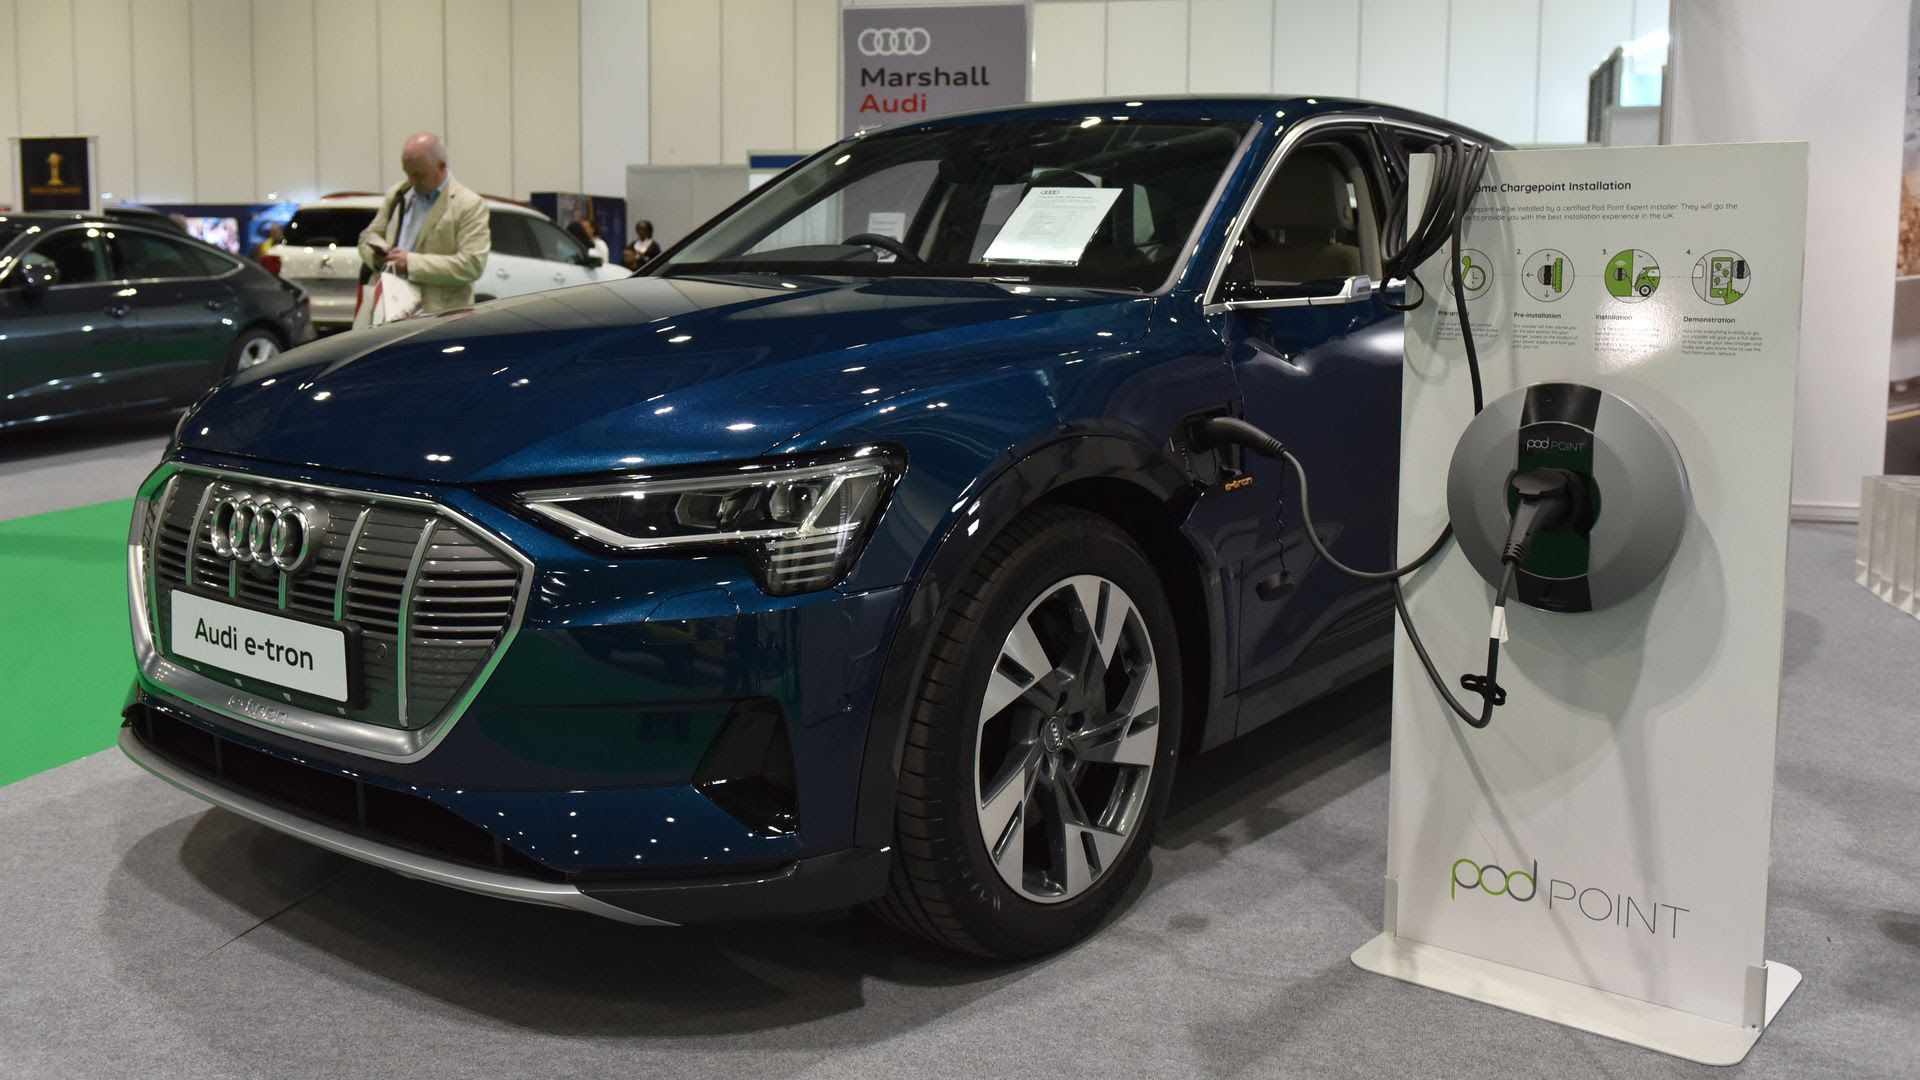 An Audi E-Tron electric SUV is displayed during the May London Motor and Tech Show. Photo: John Keeble/Getty Images